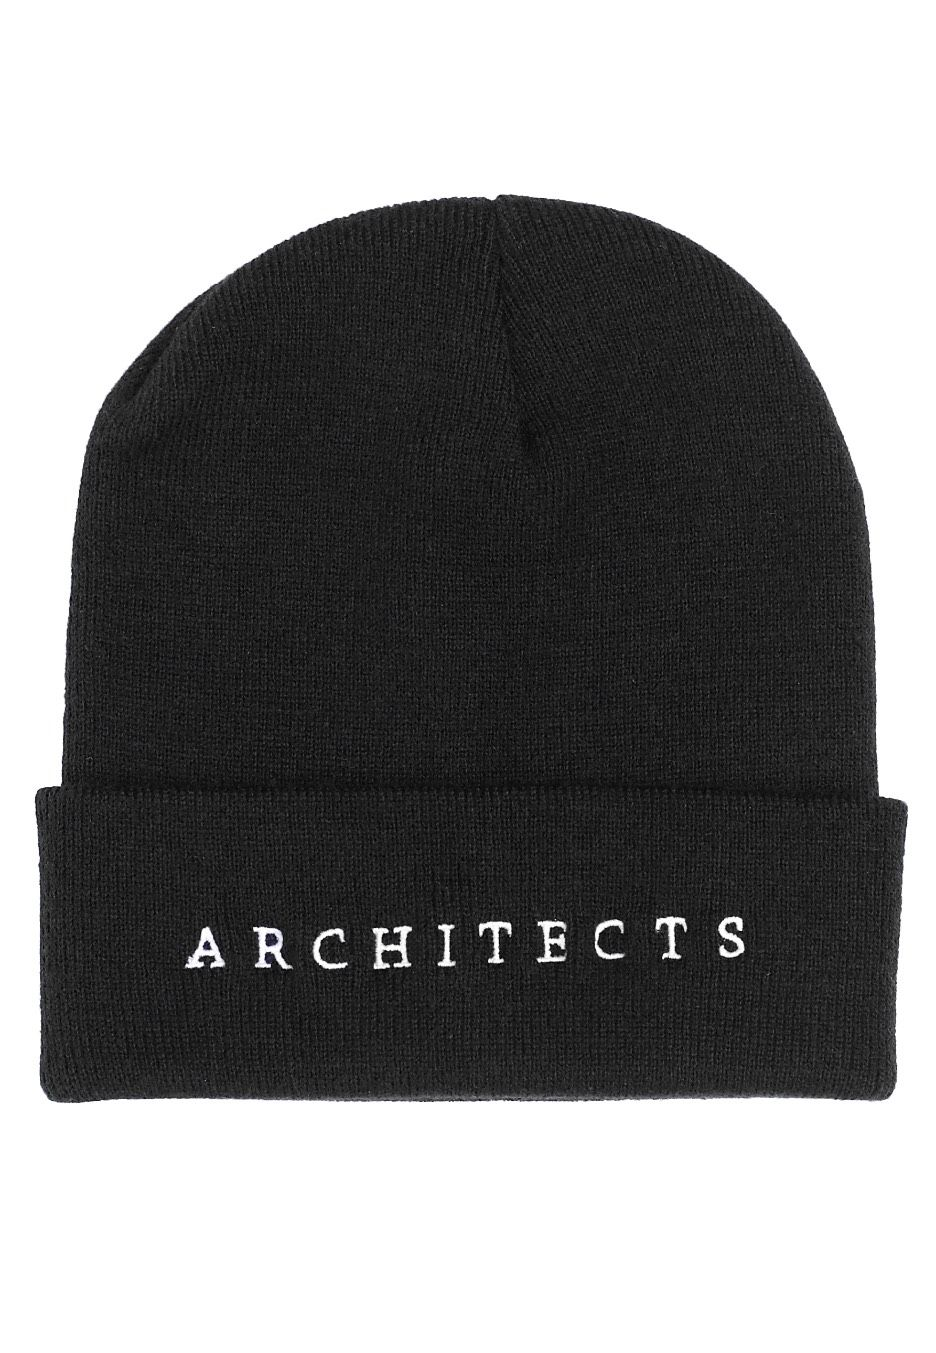 Architects - New Logo - Long Beanie - Official Merch Store - Impericon.com  UK 2d131ac3905